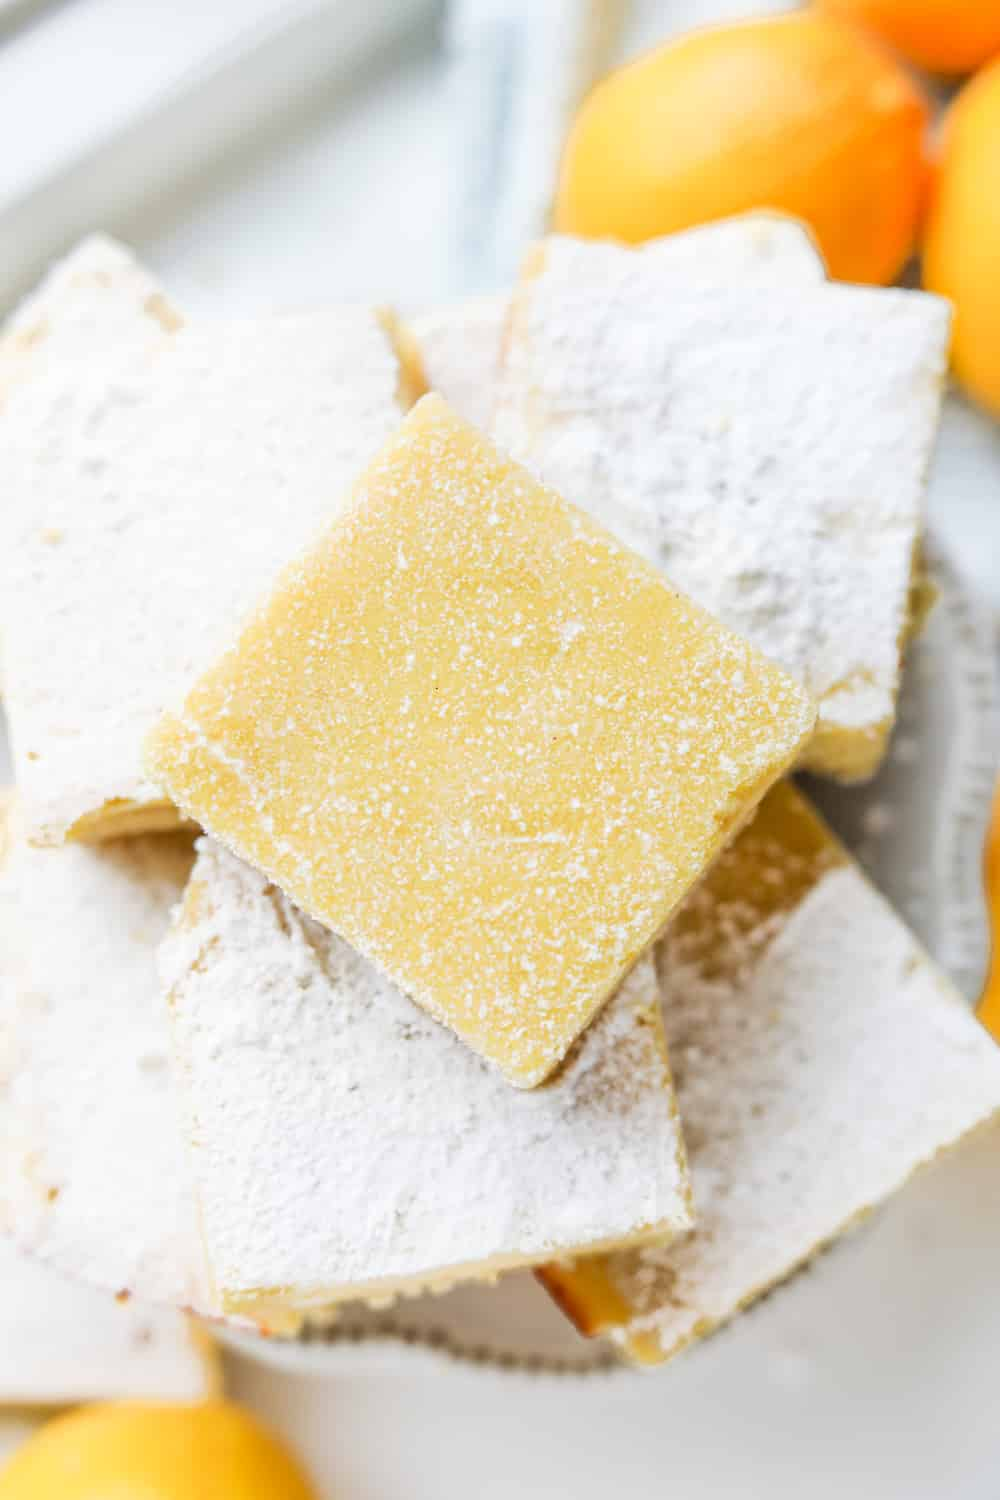 Lemon bars stacked on top of one another.